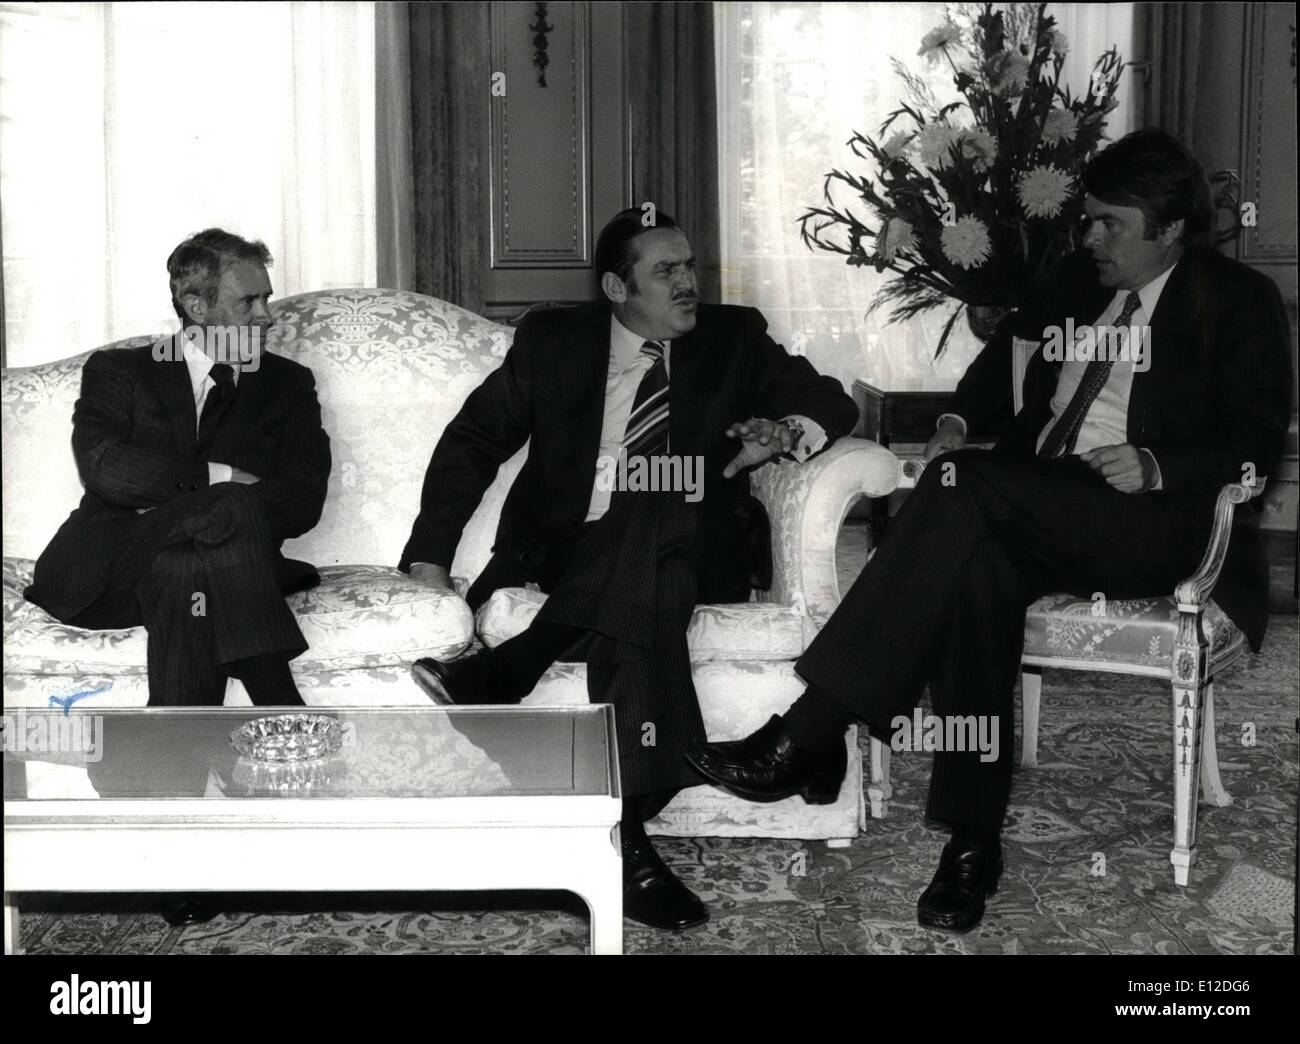 Dec. 15, 2011 - Talks on Rhodesia: Talks on Rhodesia were held in London today involving united states setary of state Vyrus - Stock Image